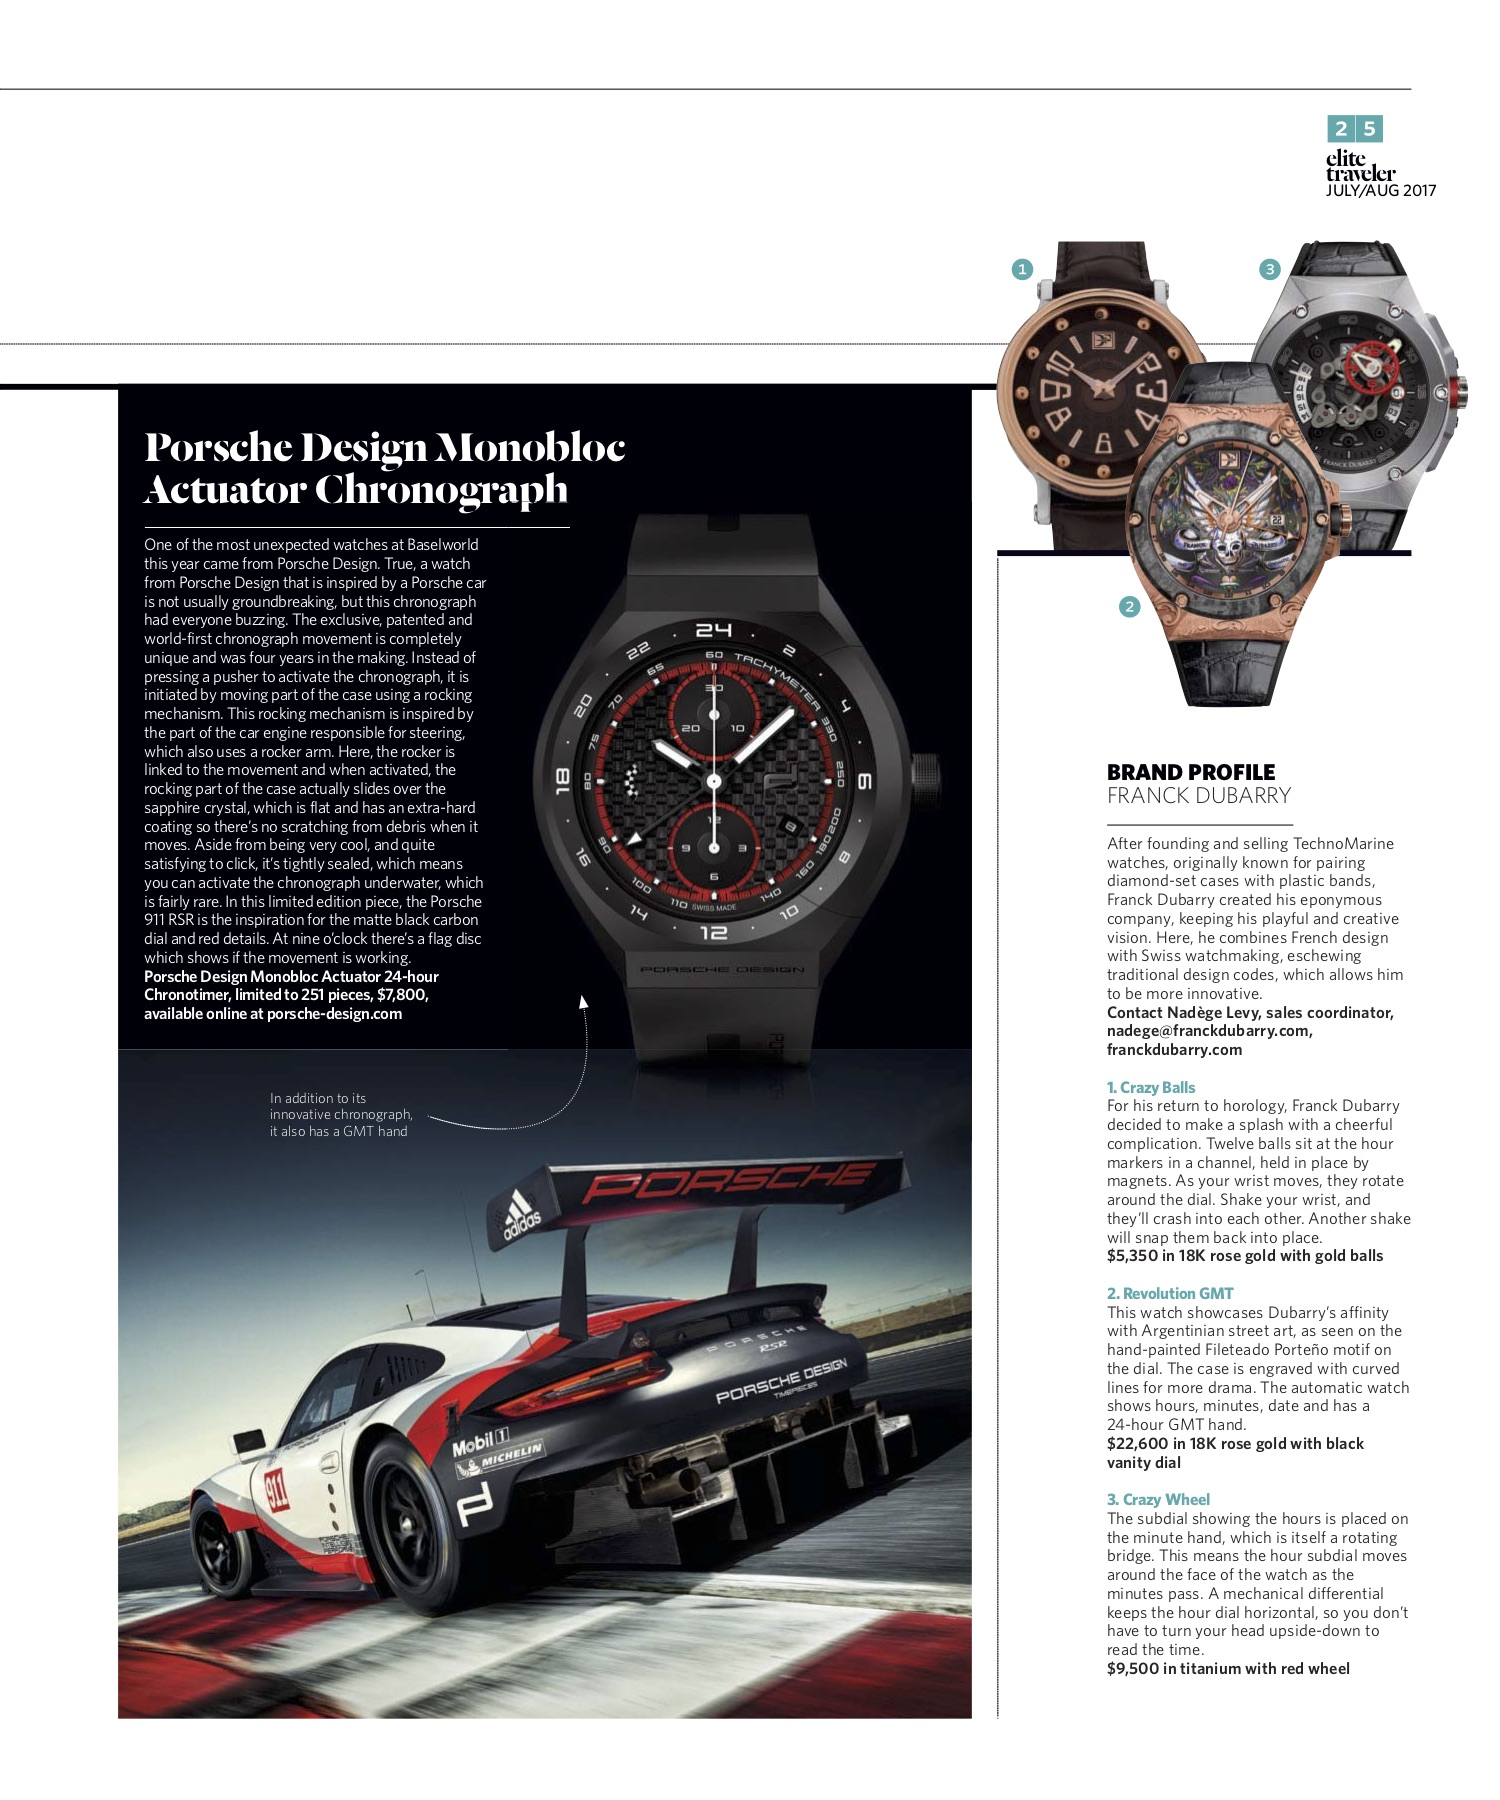 July/August 2017 | Porsche Design, Franck Dubarry Profile